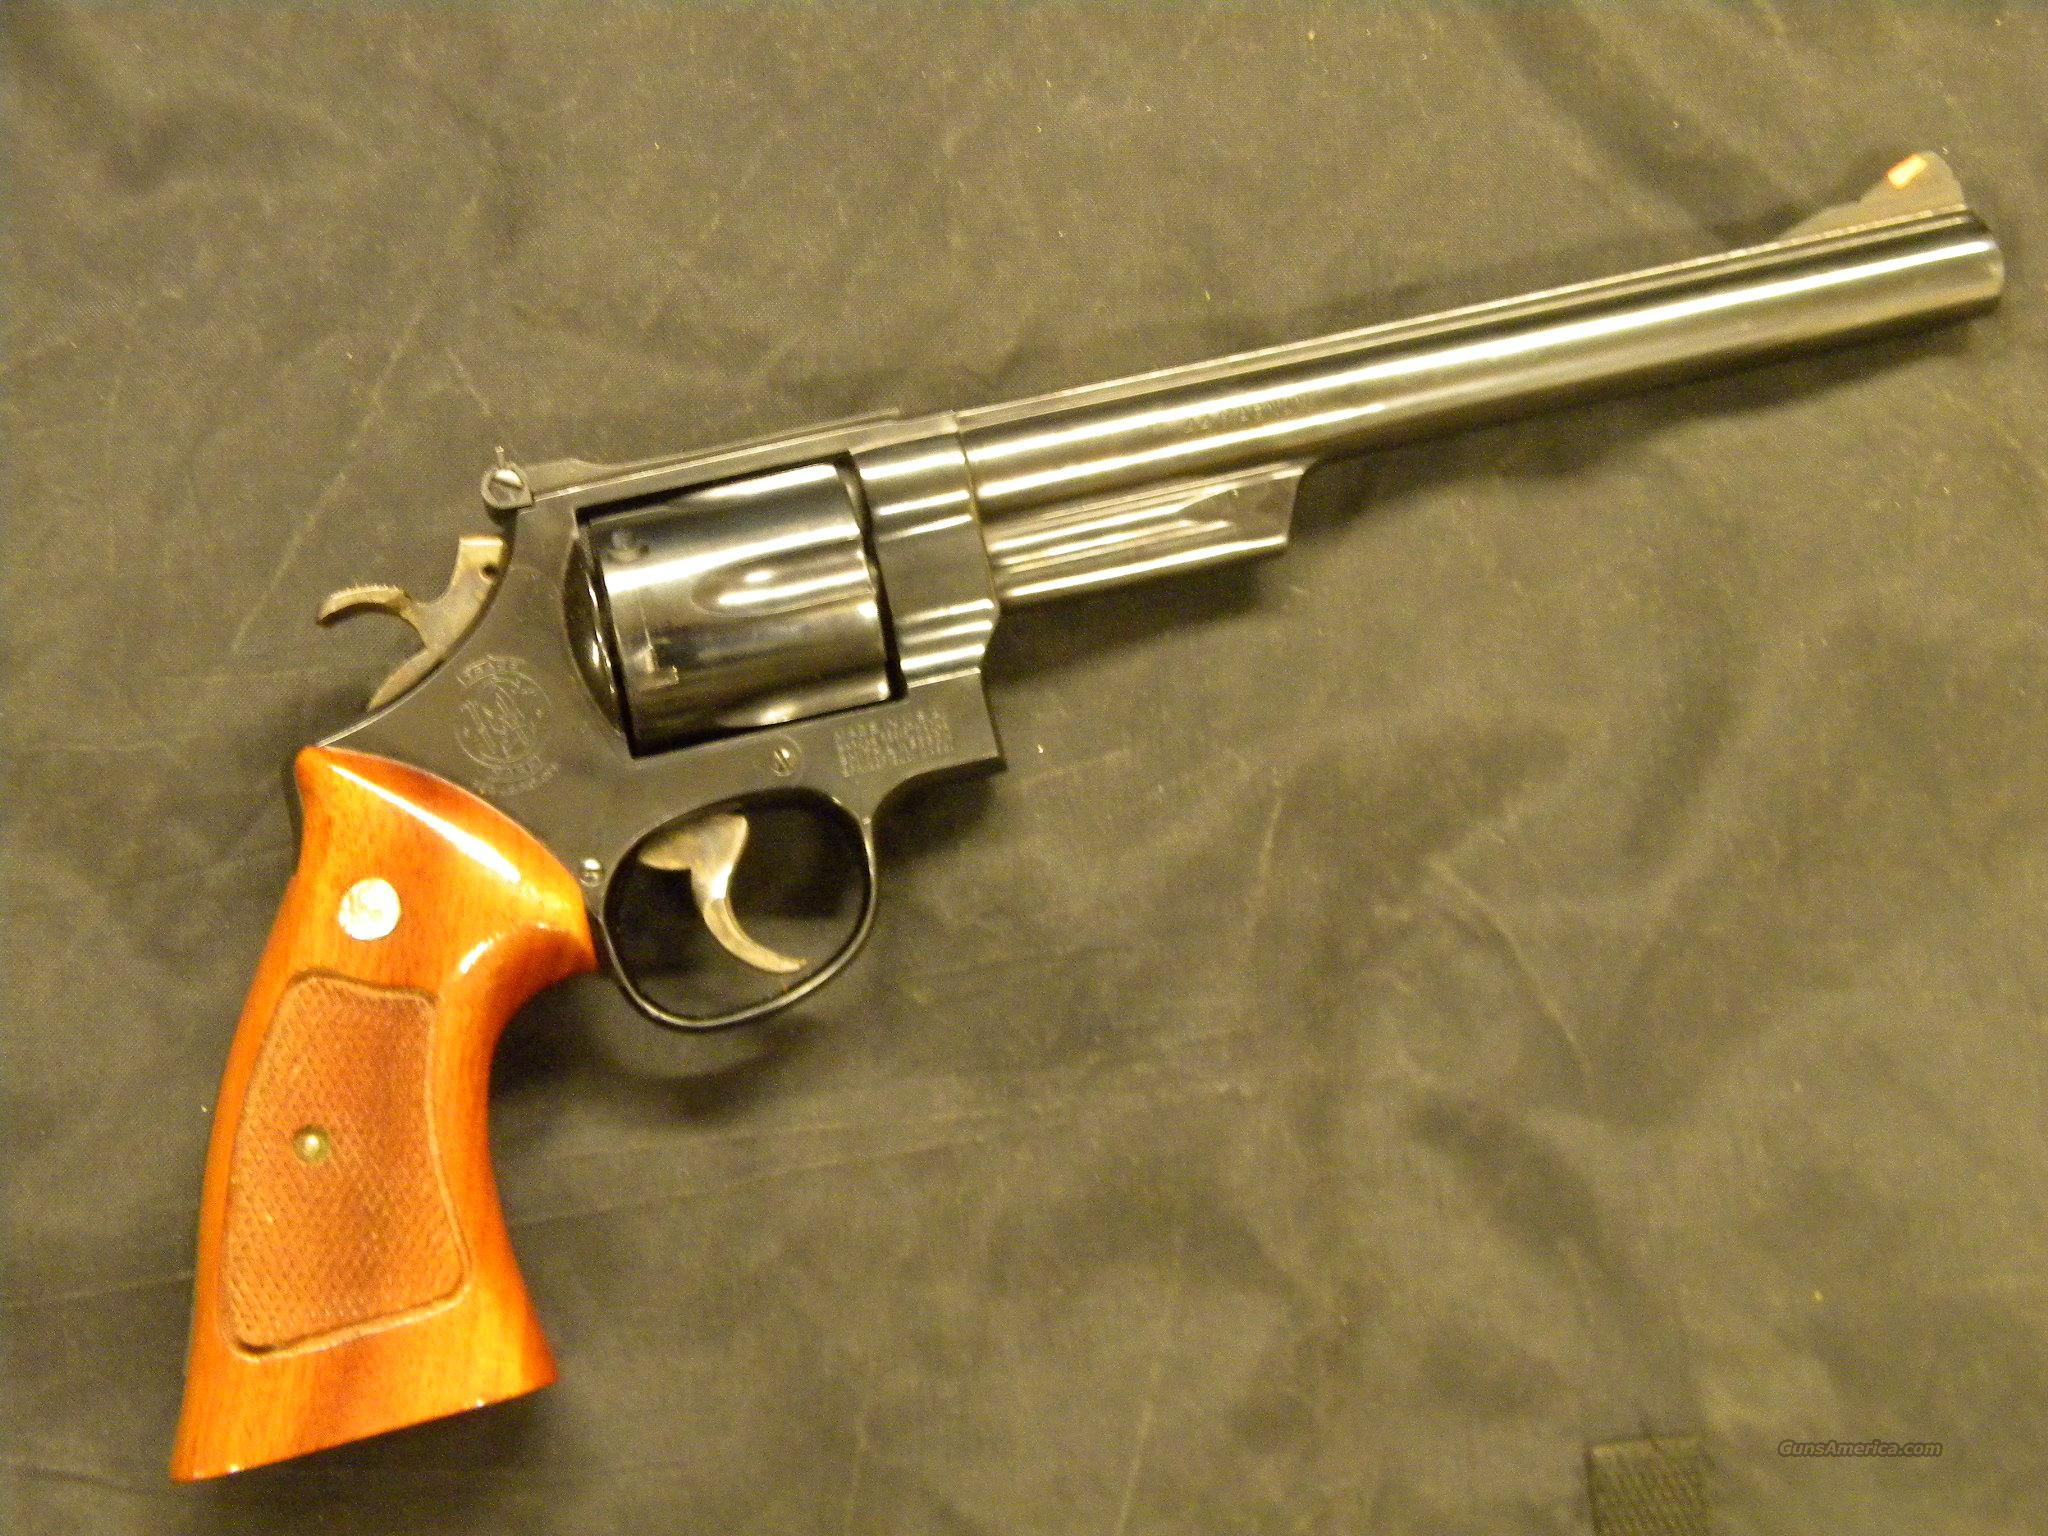 USED SMITH AND WESSON 29-3 44MAG  Guns > Pistols > Smith & Wesson Revolvers > Full Frame Revolver